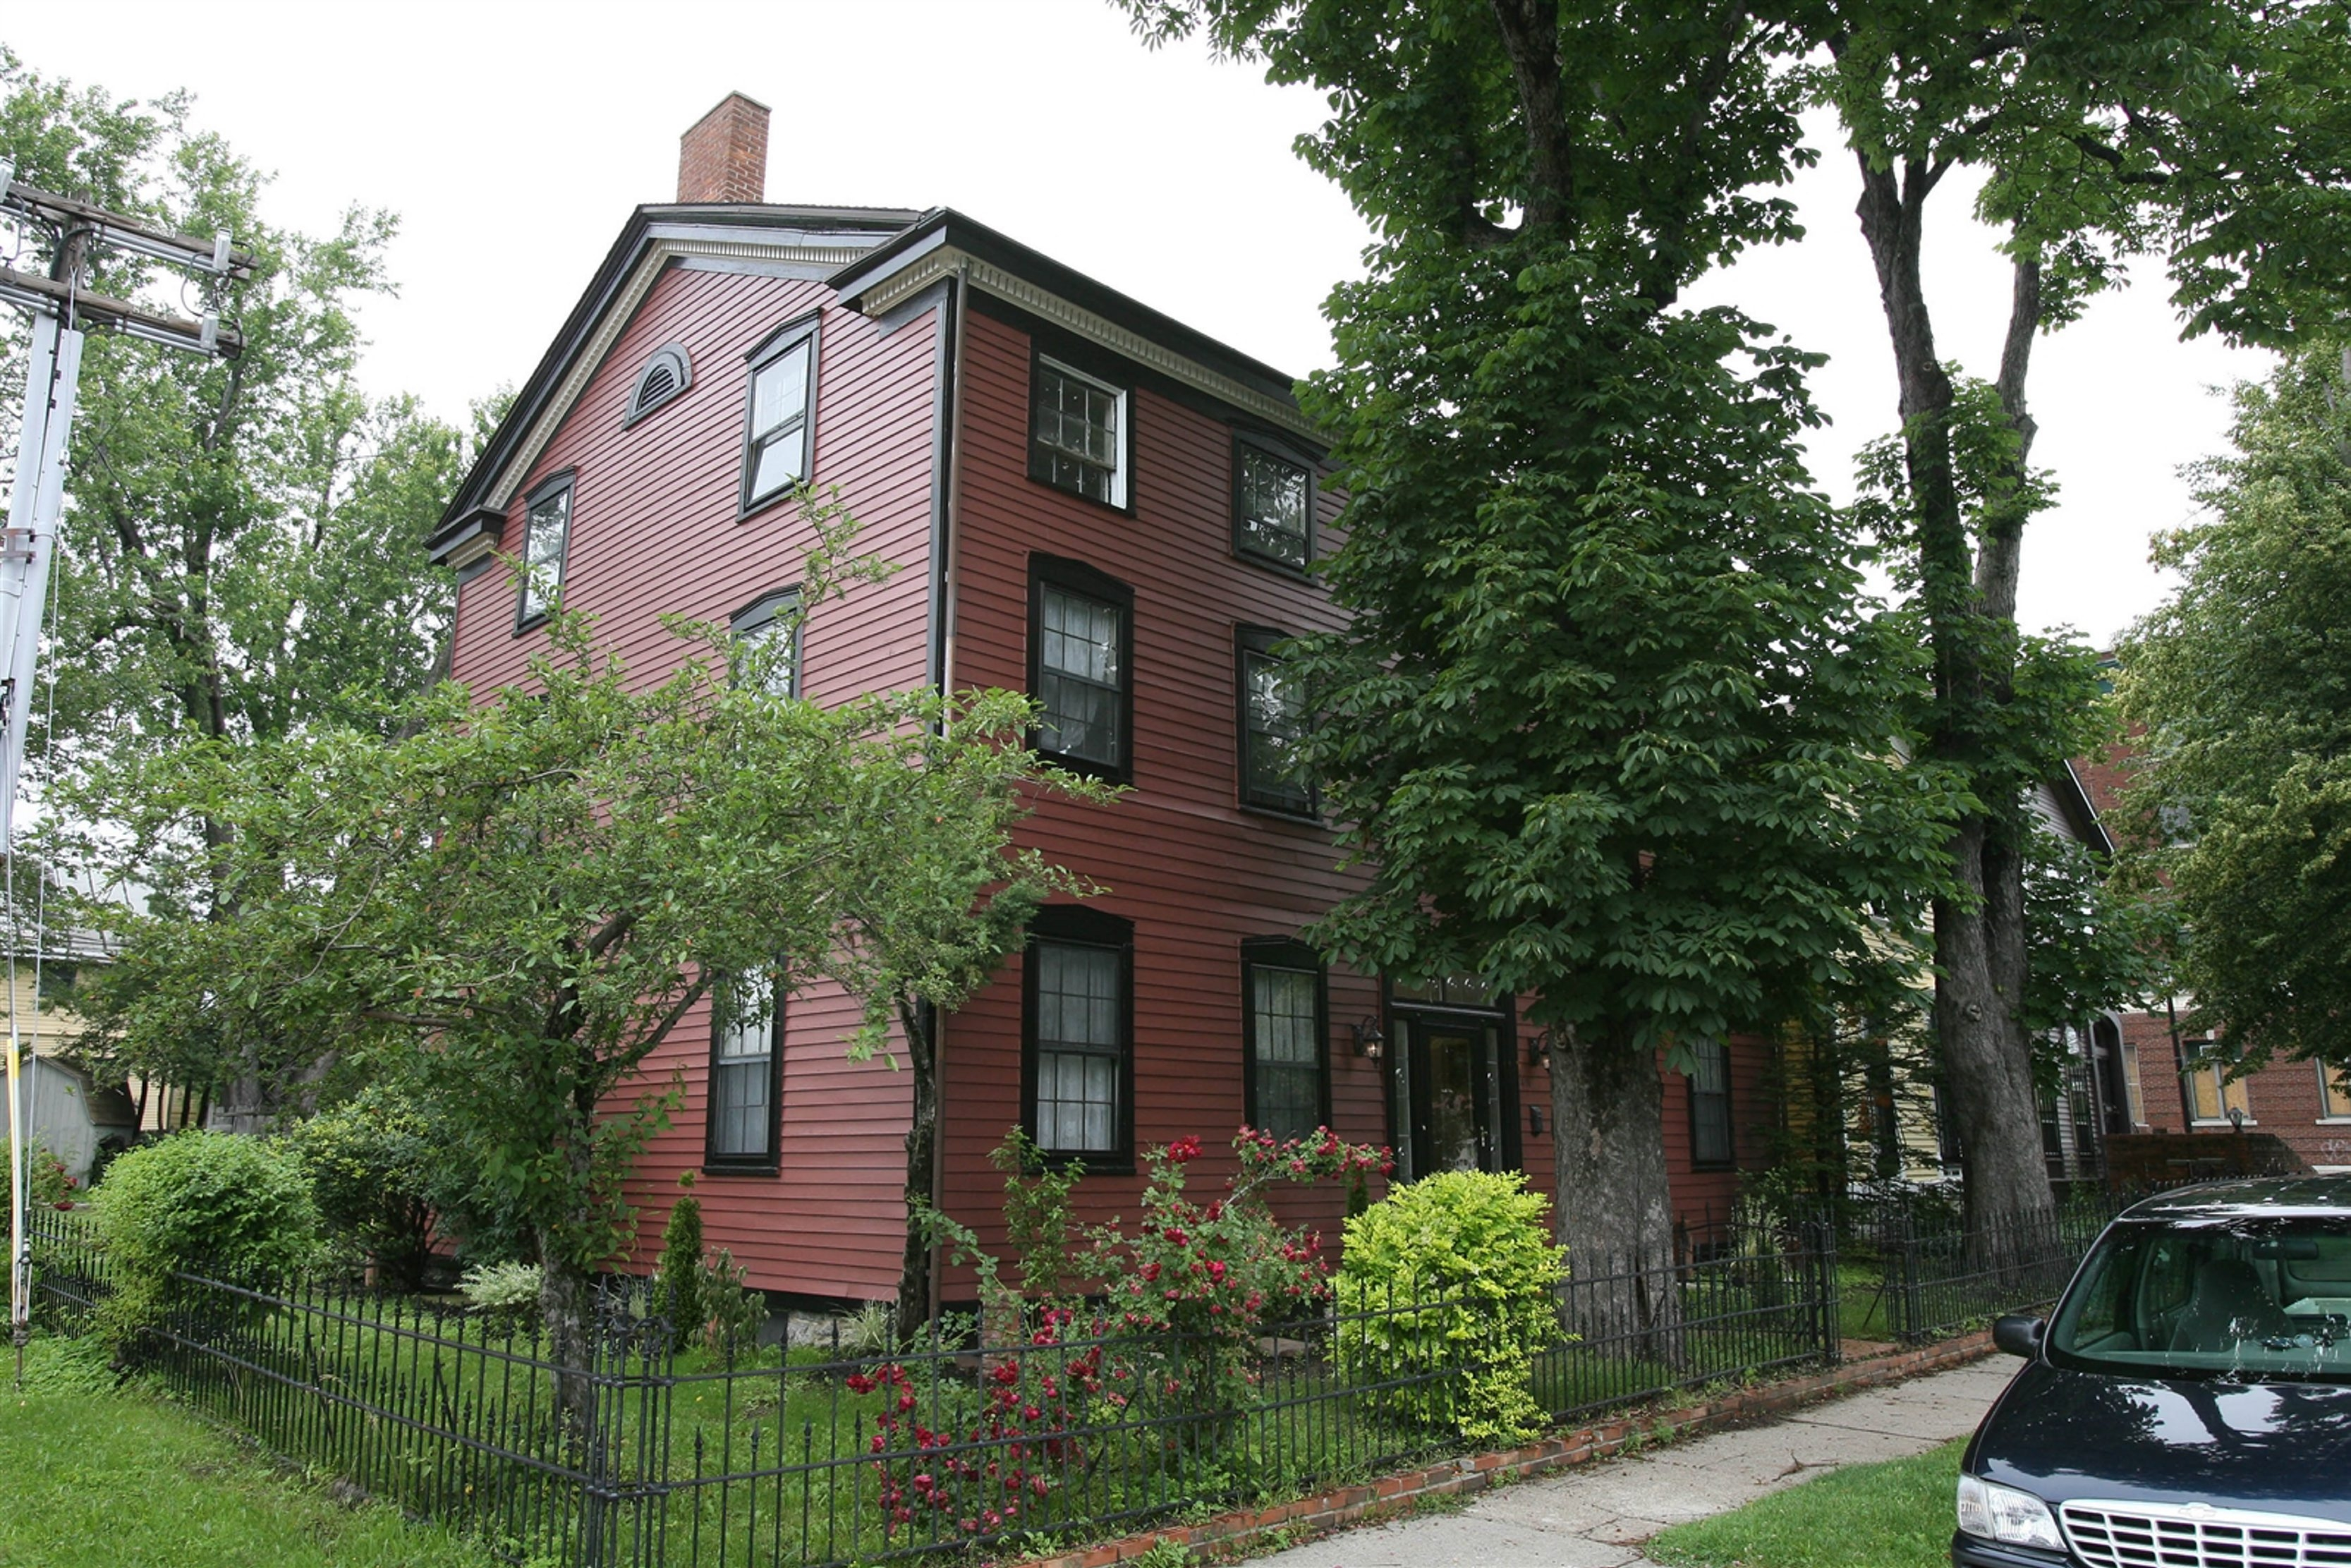 The Coit House, at 414 Virginia St. in Allentown, was built circa 1814-1815, after the War of 1812. It is currently maintained by residents Timothy Boyand and Sue-Jolie Rioux.